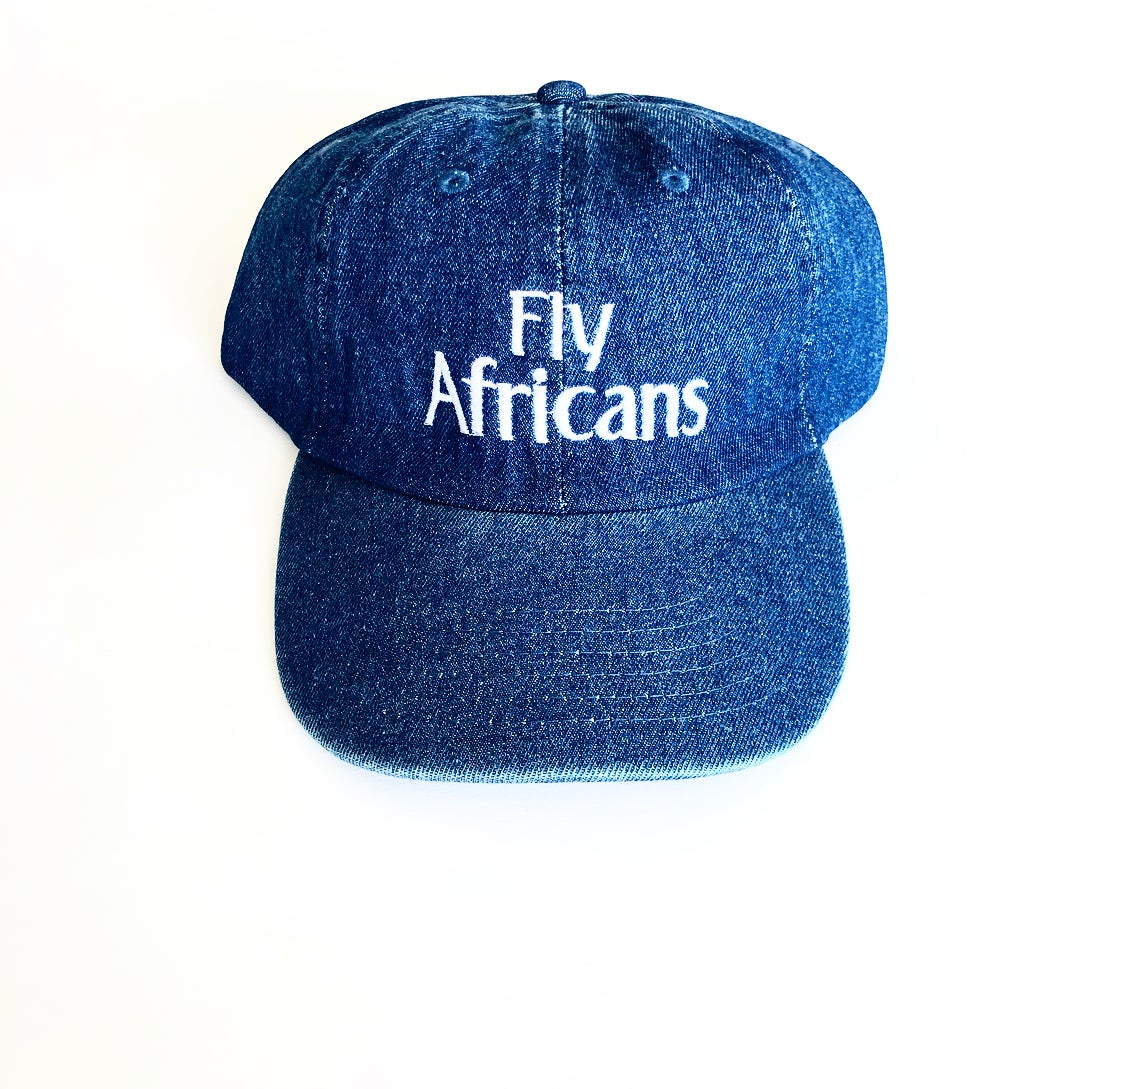 Image of Fly Africans Dad cap